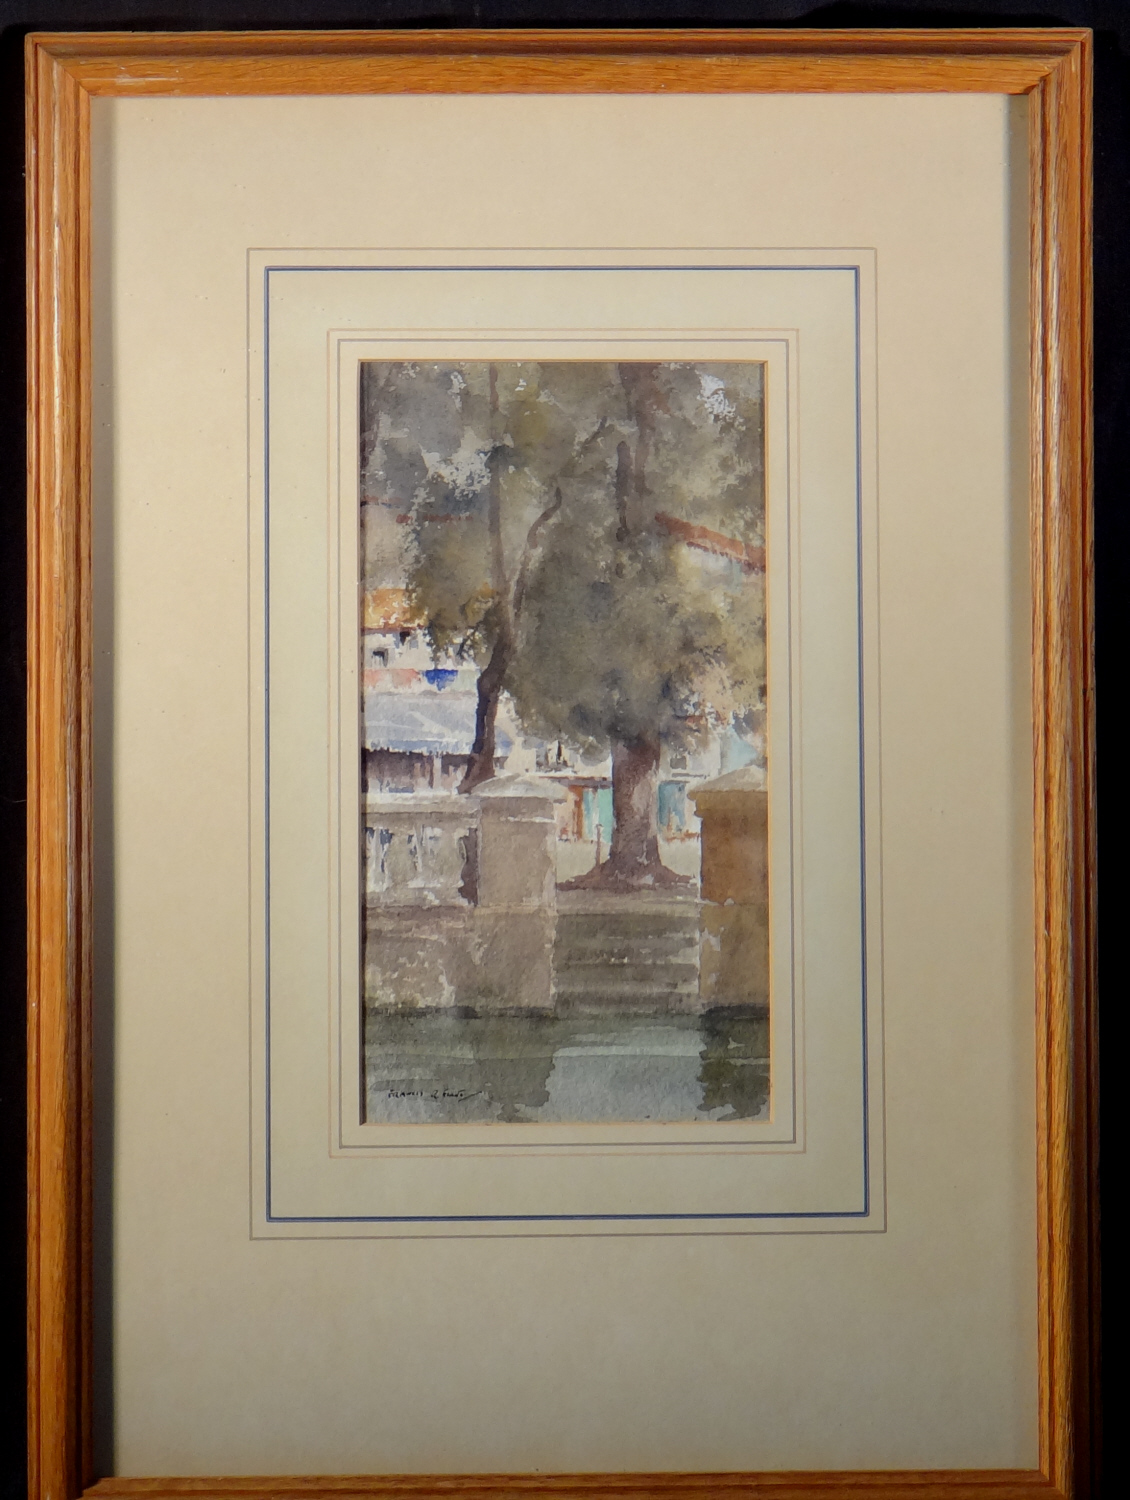 frances murray russell flint, across the moat, Brantome, original watercolour painting